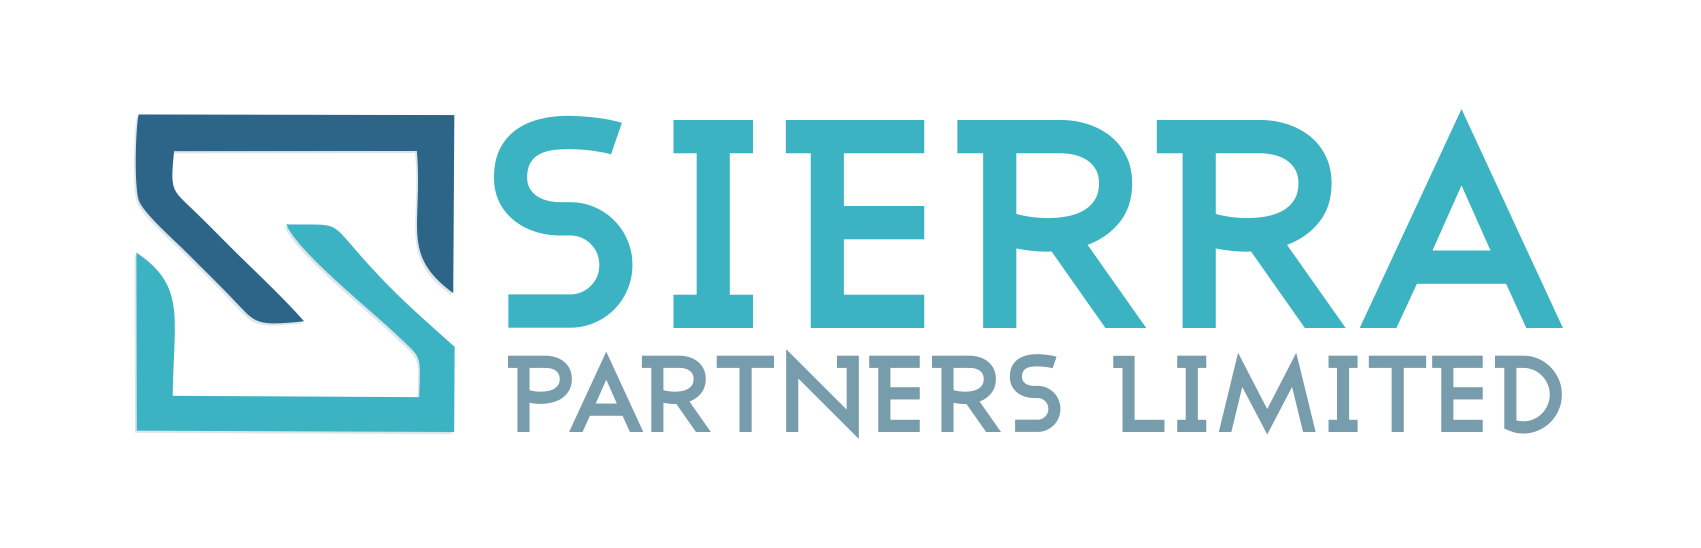 Sierra Partners Limited